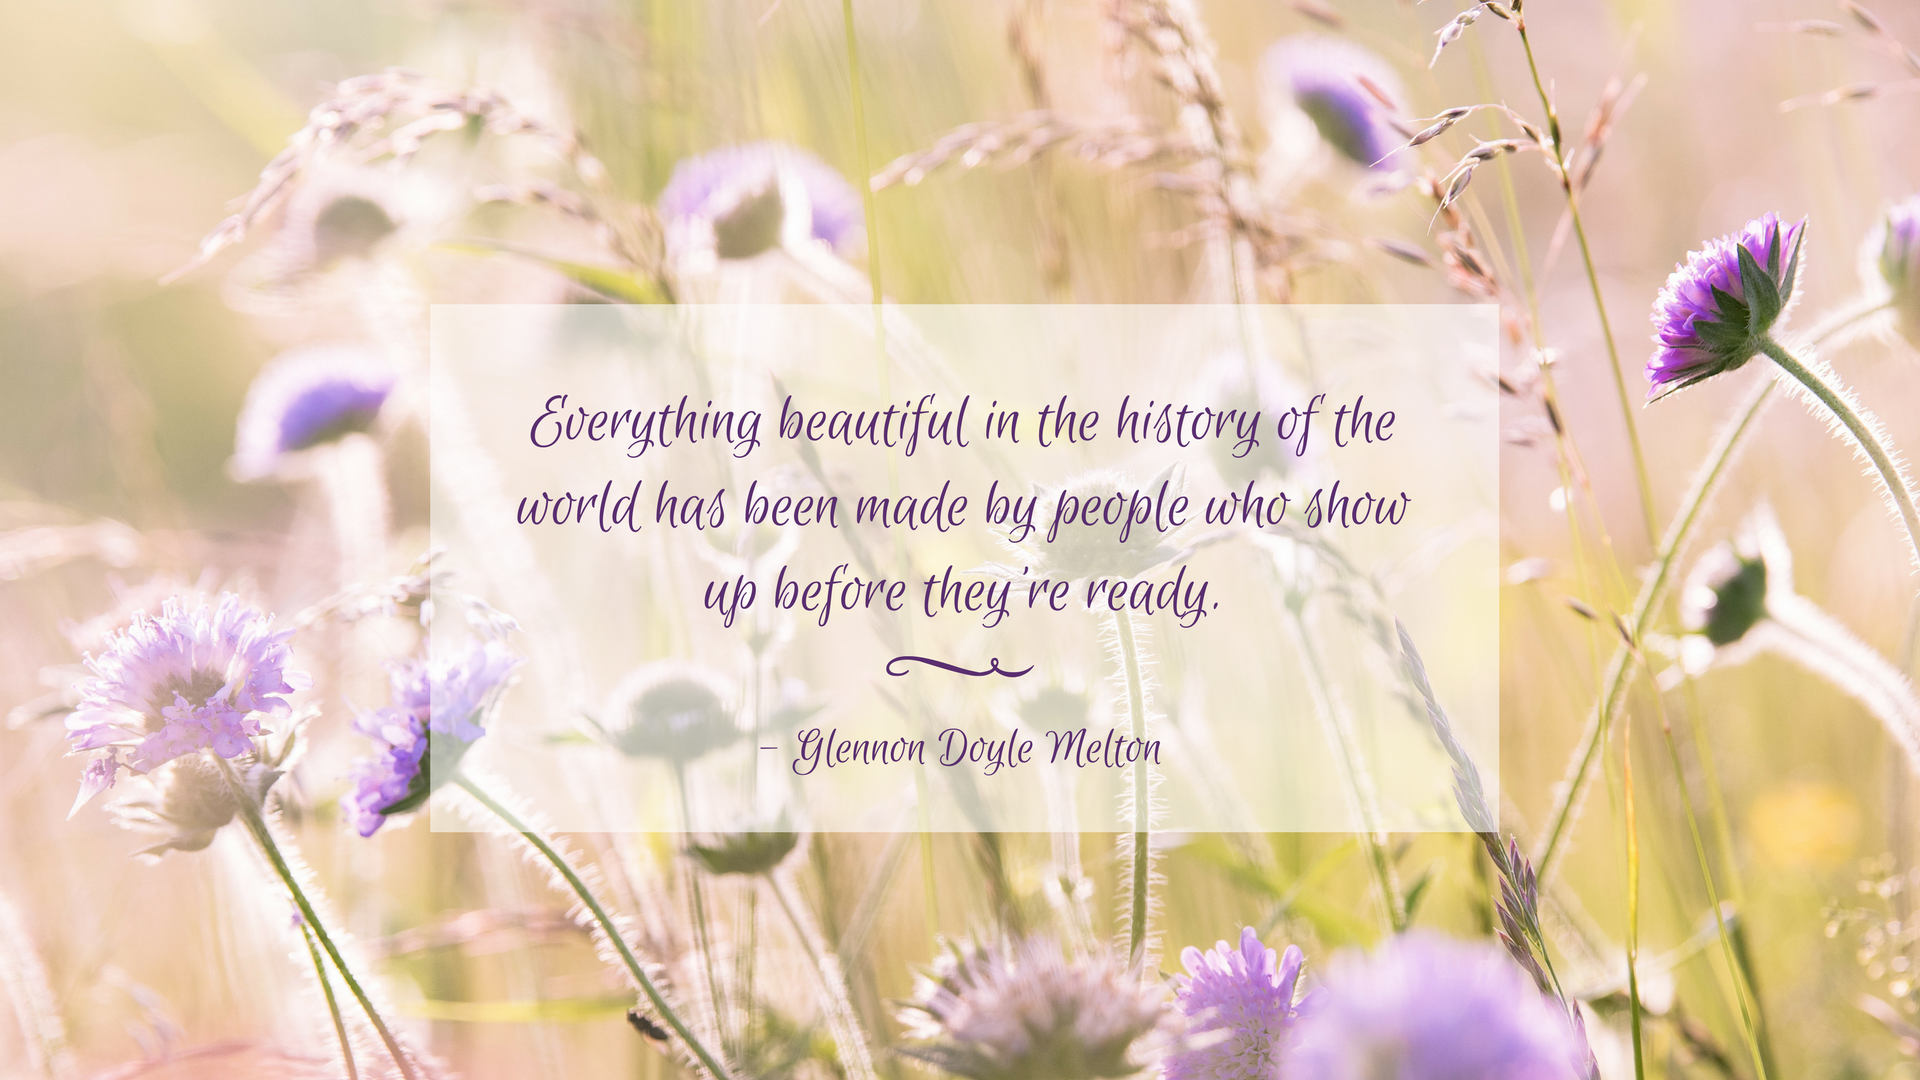 """Everything beautiful in the history of the world has been made by people who show up before they're ready.""  Glennon Doyle Melton"